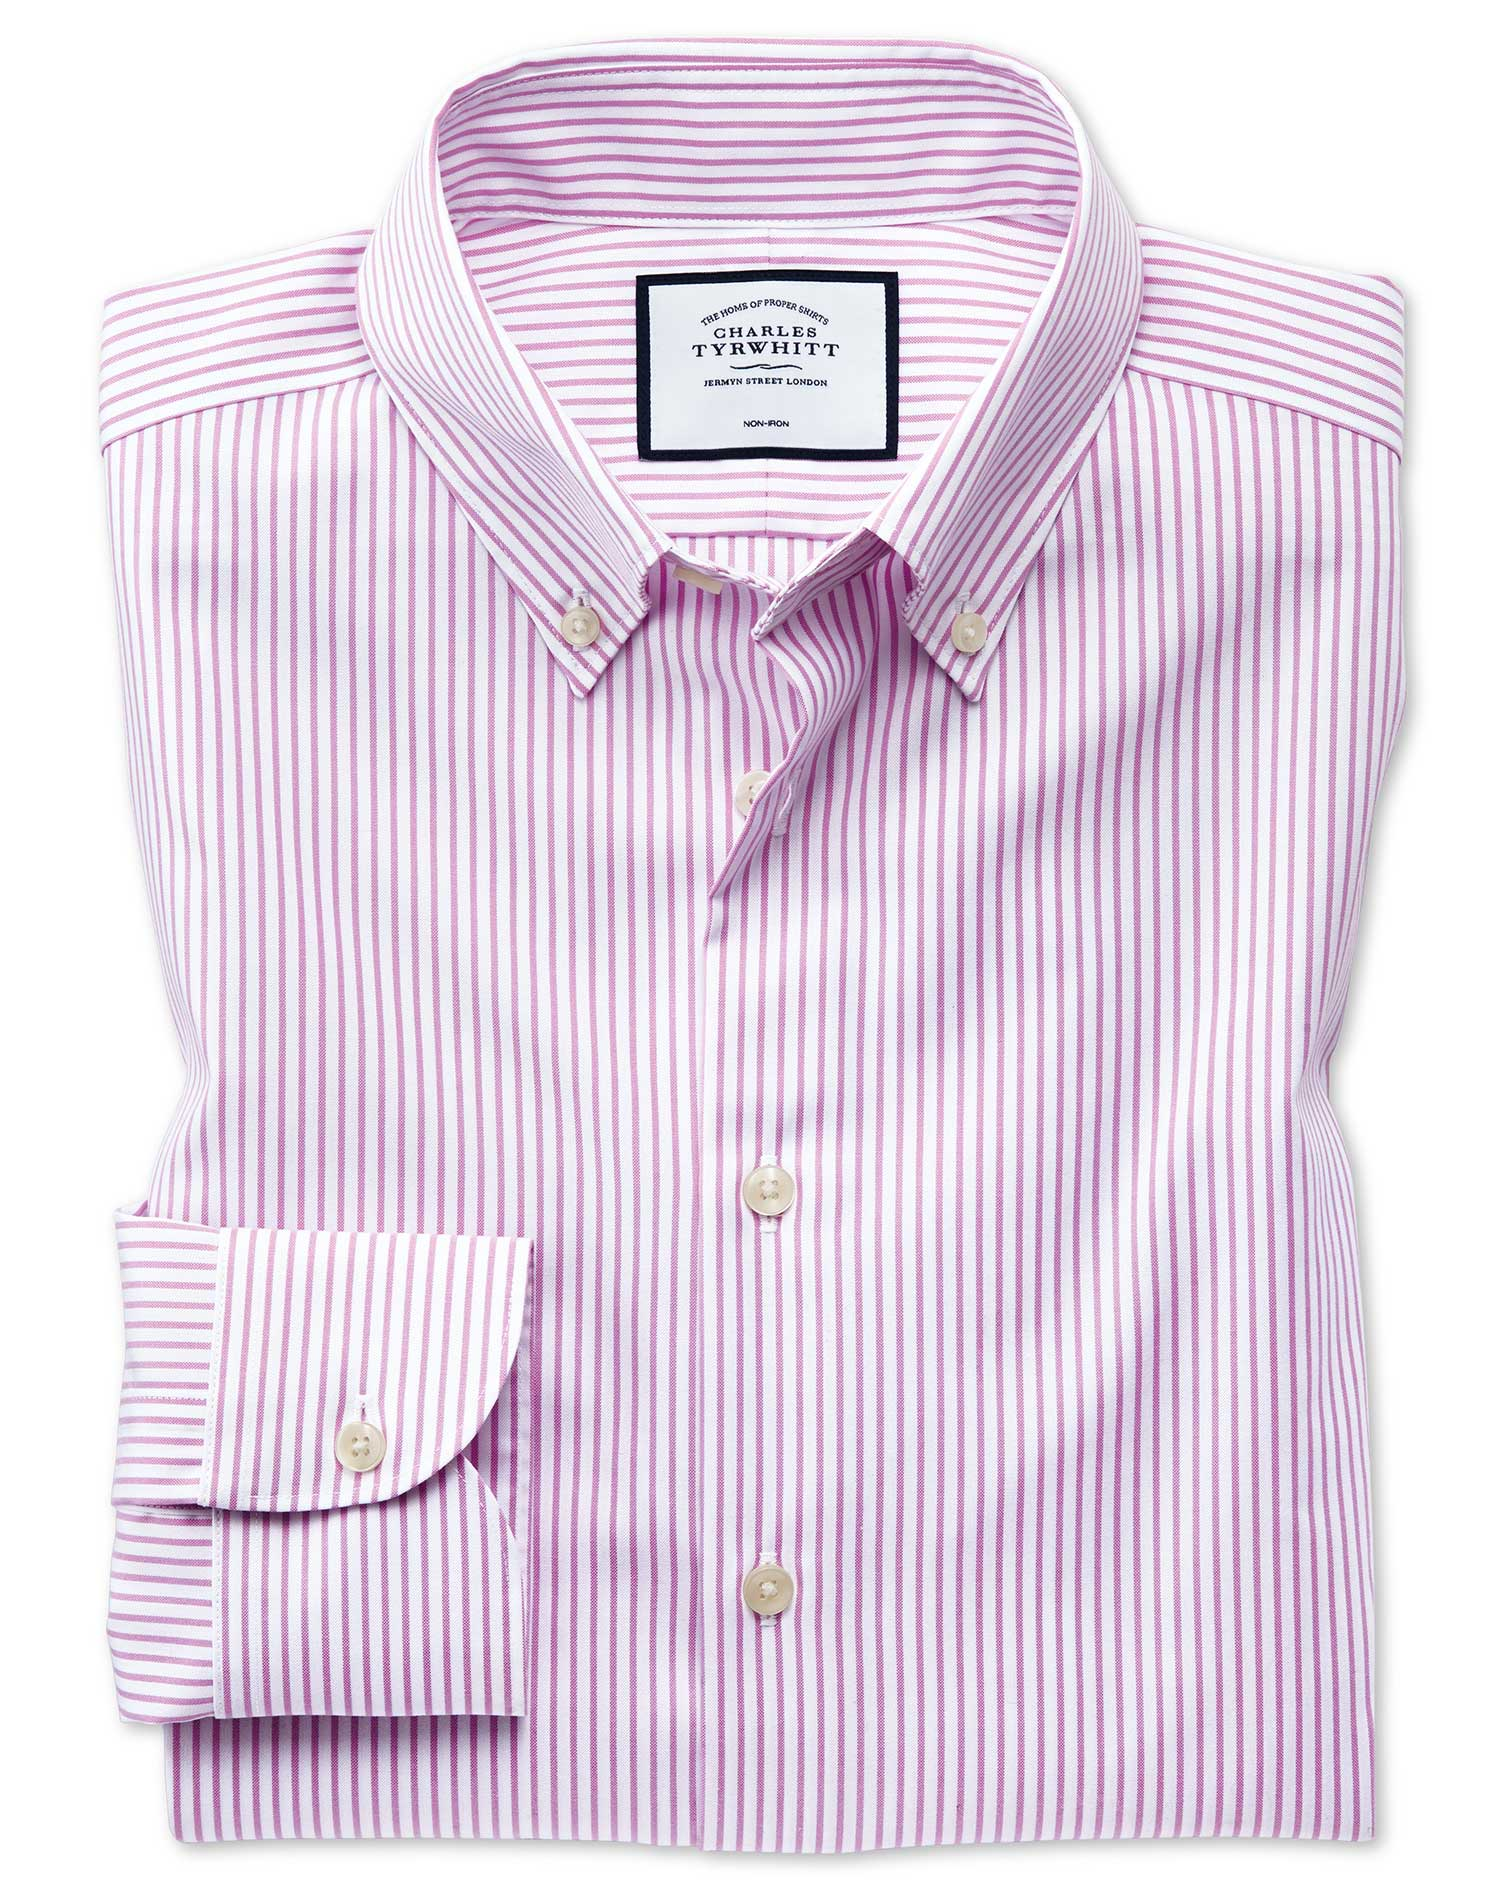 Extra Slim Fit Business Casual Non-Iron Button-Down Pink Stripe Cotton Formal Shirt Single Cuff Size